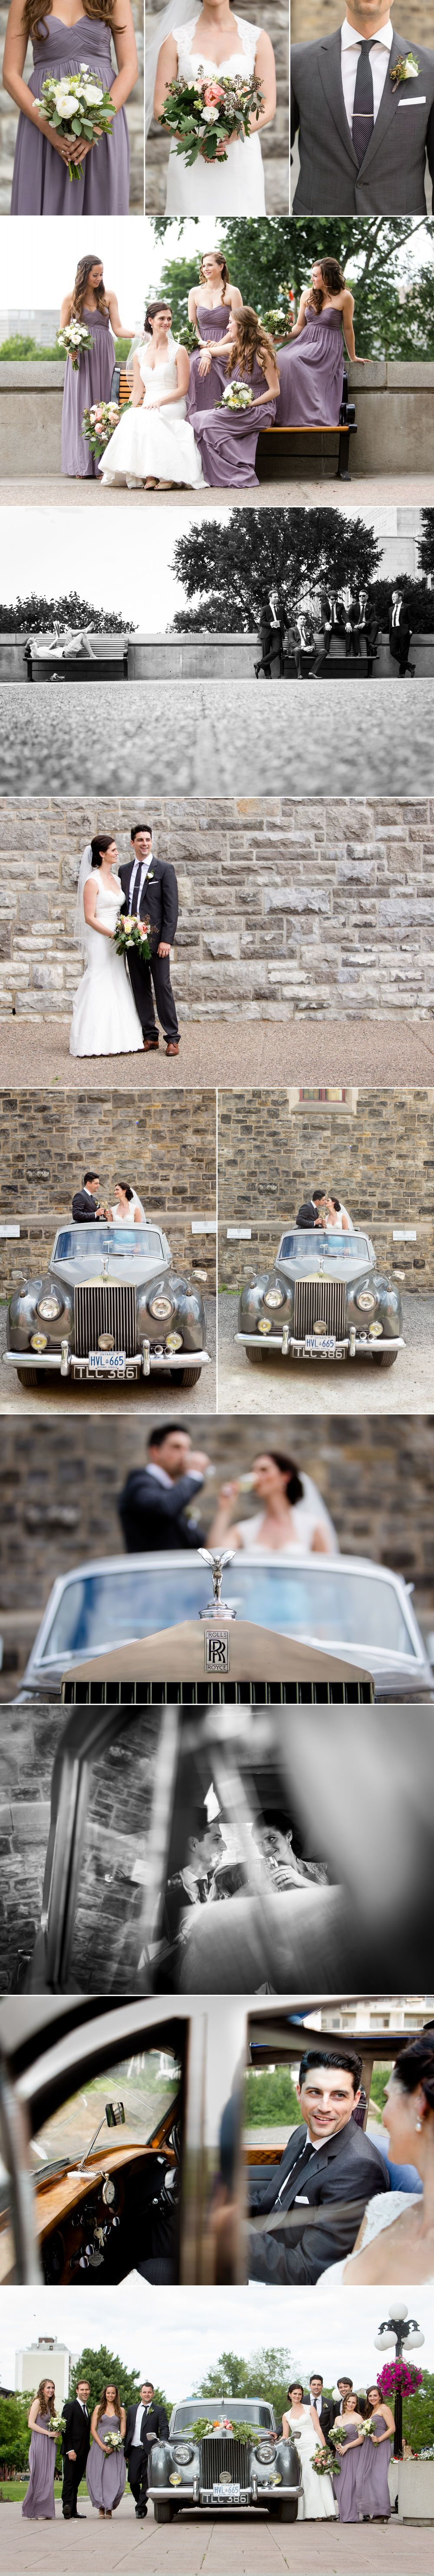 Wedding photographs with a vintage car in downtown ottawa